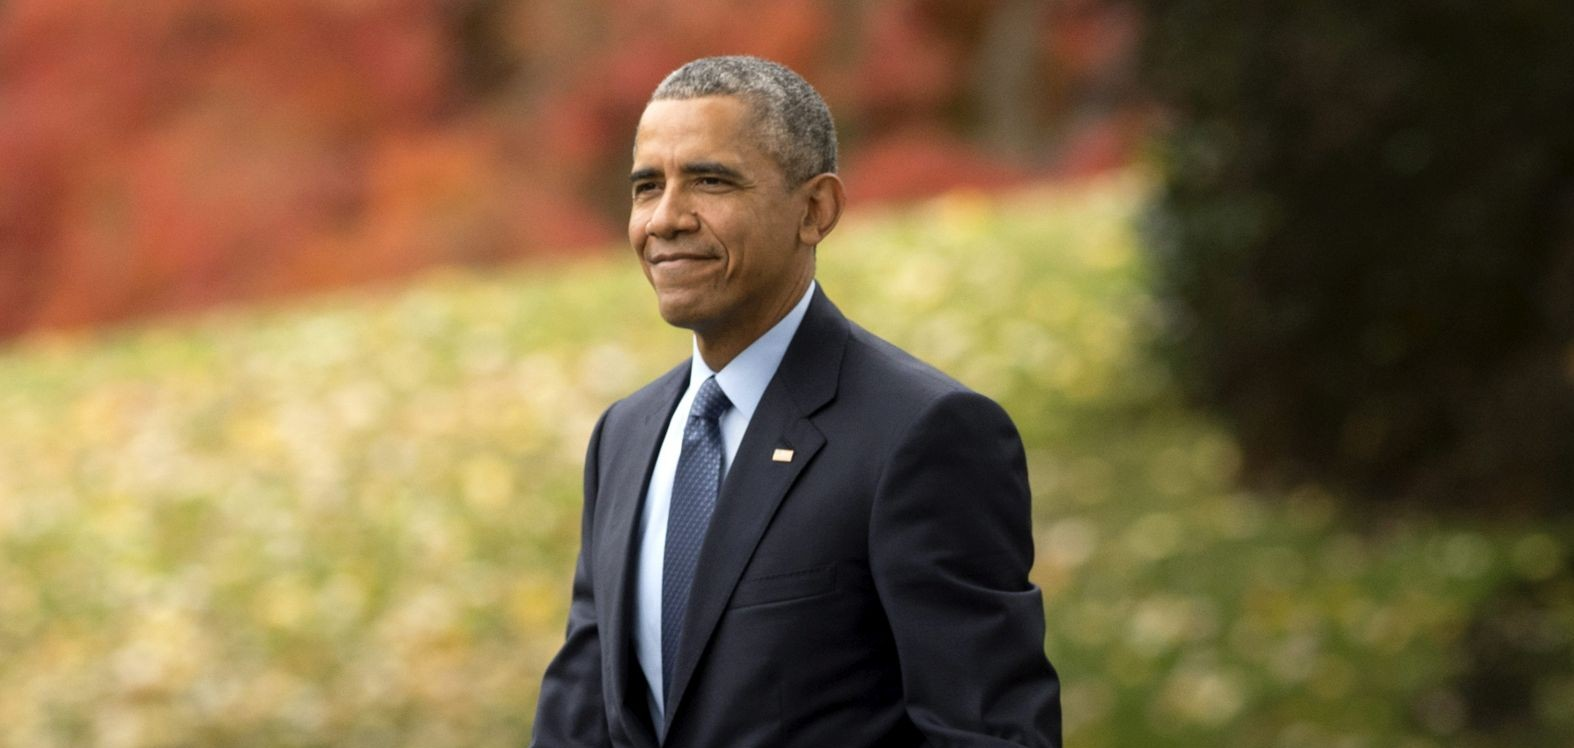 VIDEO: Barack Obama blagoslovio puricu na Thanksgiving